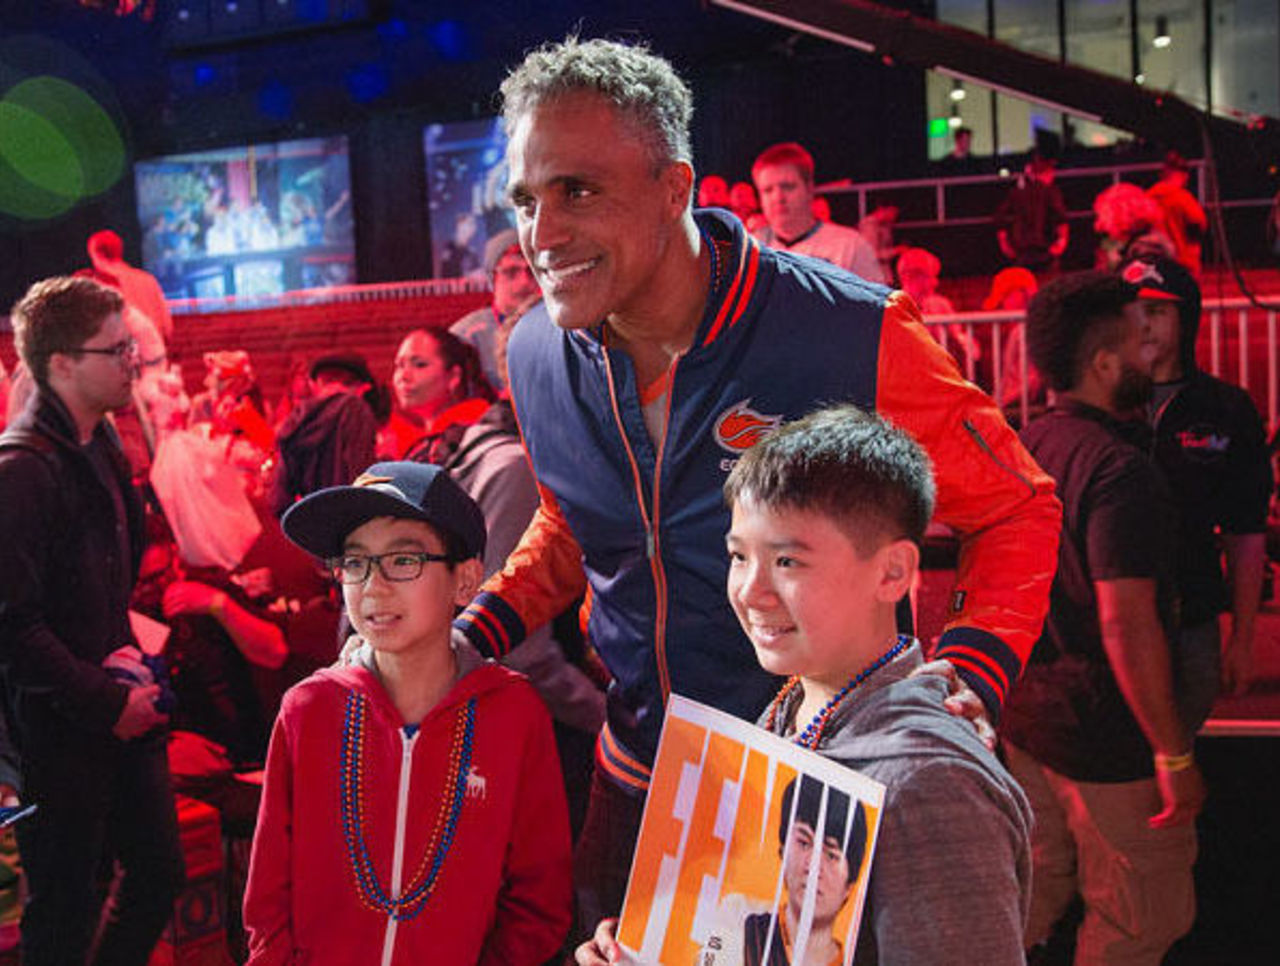 New emails allegedly show Echo Fox shareholder threatened Rick Fox's family, while Chaos Esports' w33 steps back due to health issues